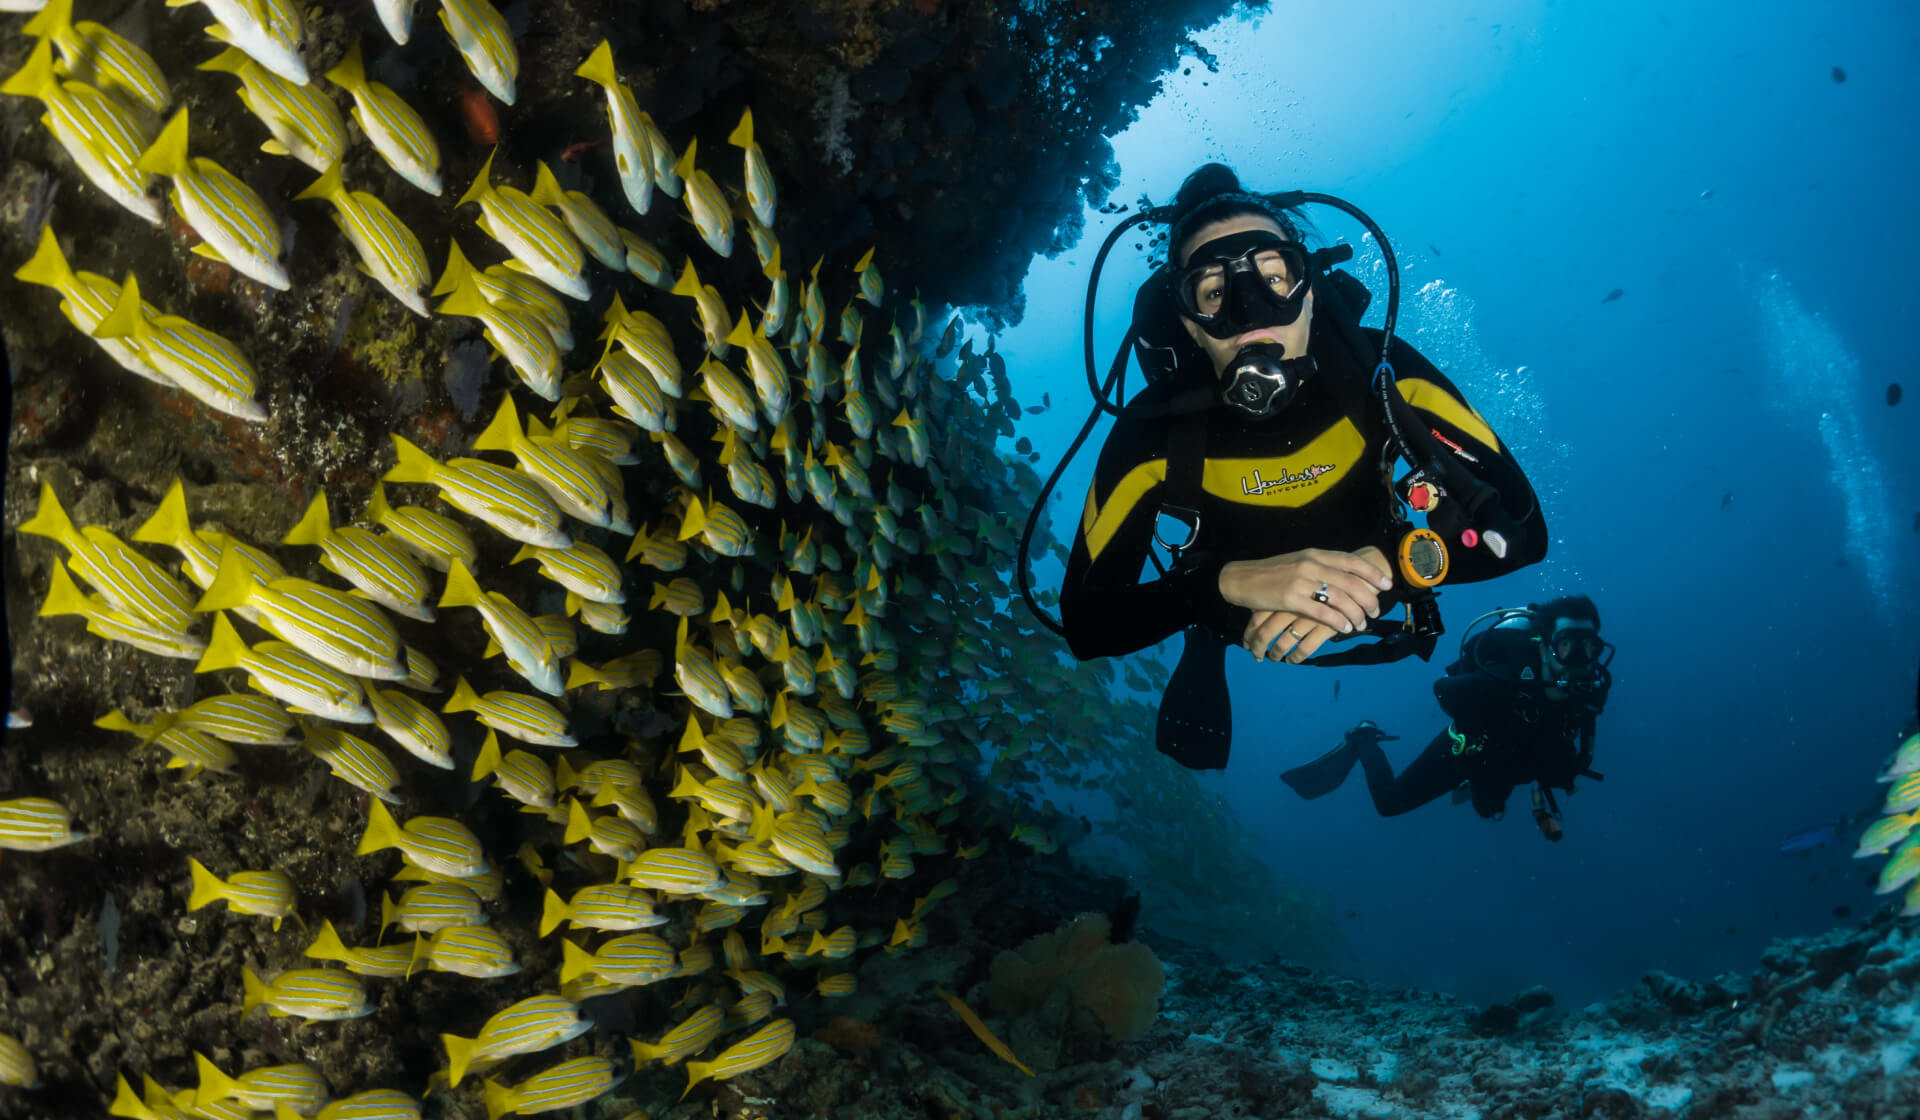 Woman and man scuba diving in blue water surrounded by yellow fish